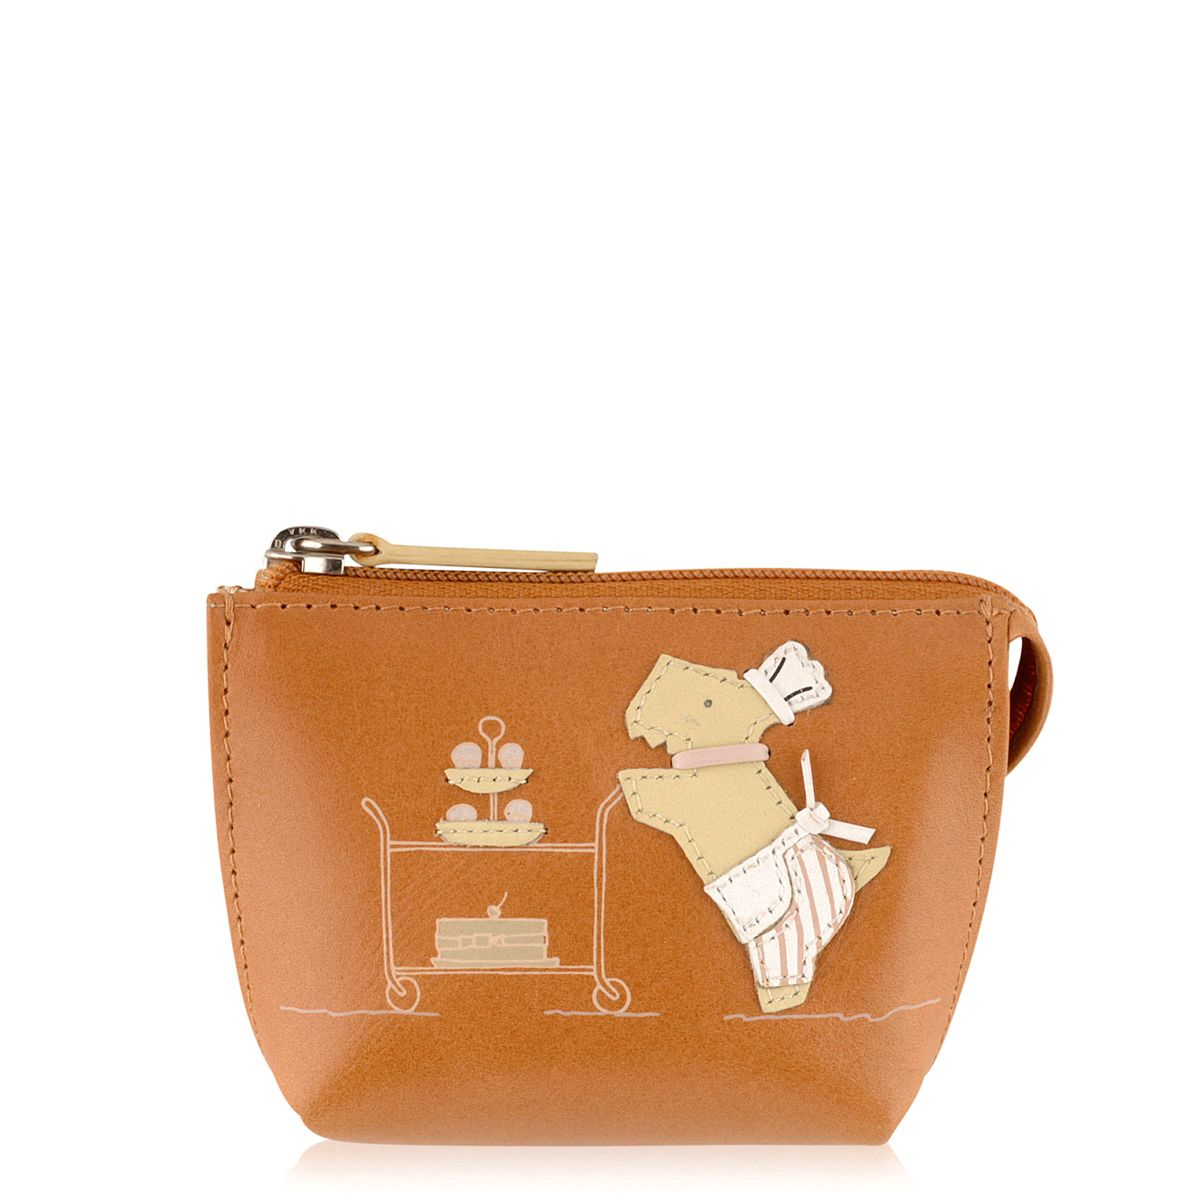 Patisserie Raderlie tan coin purse